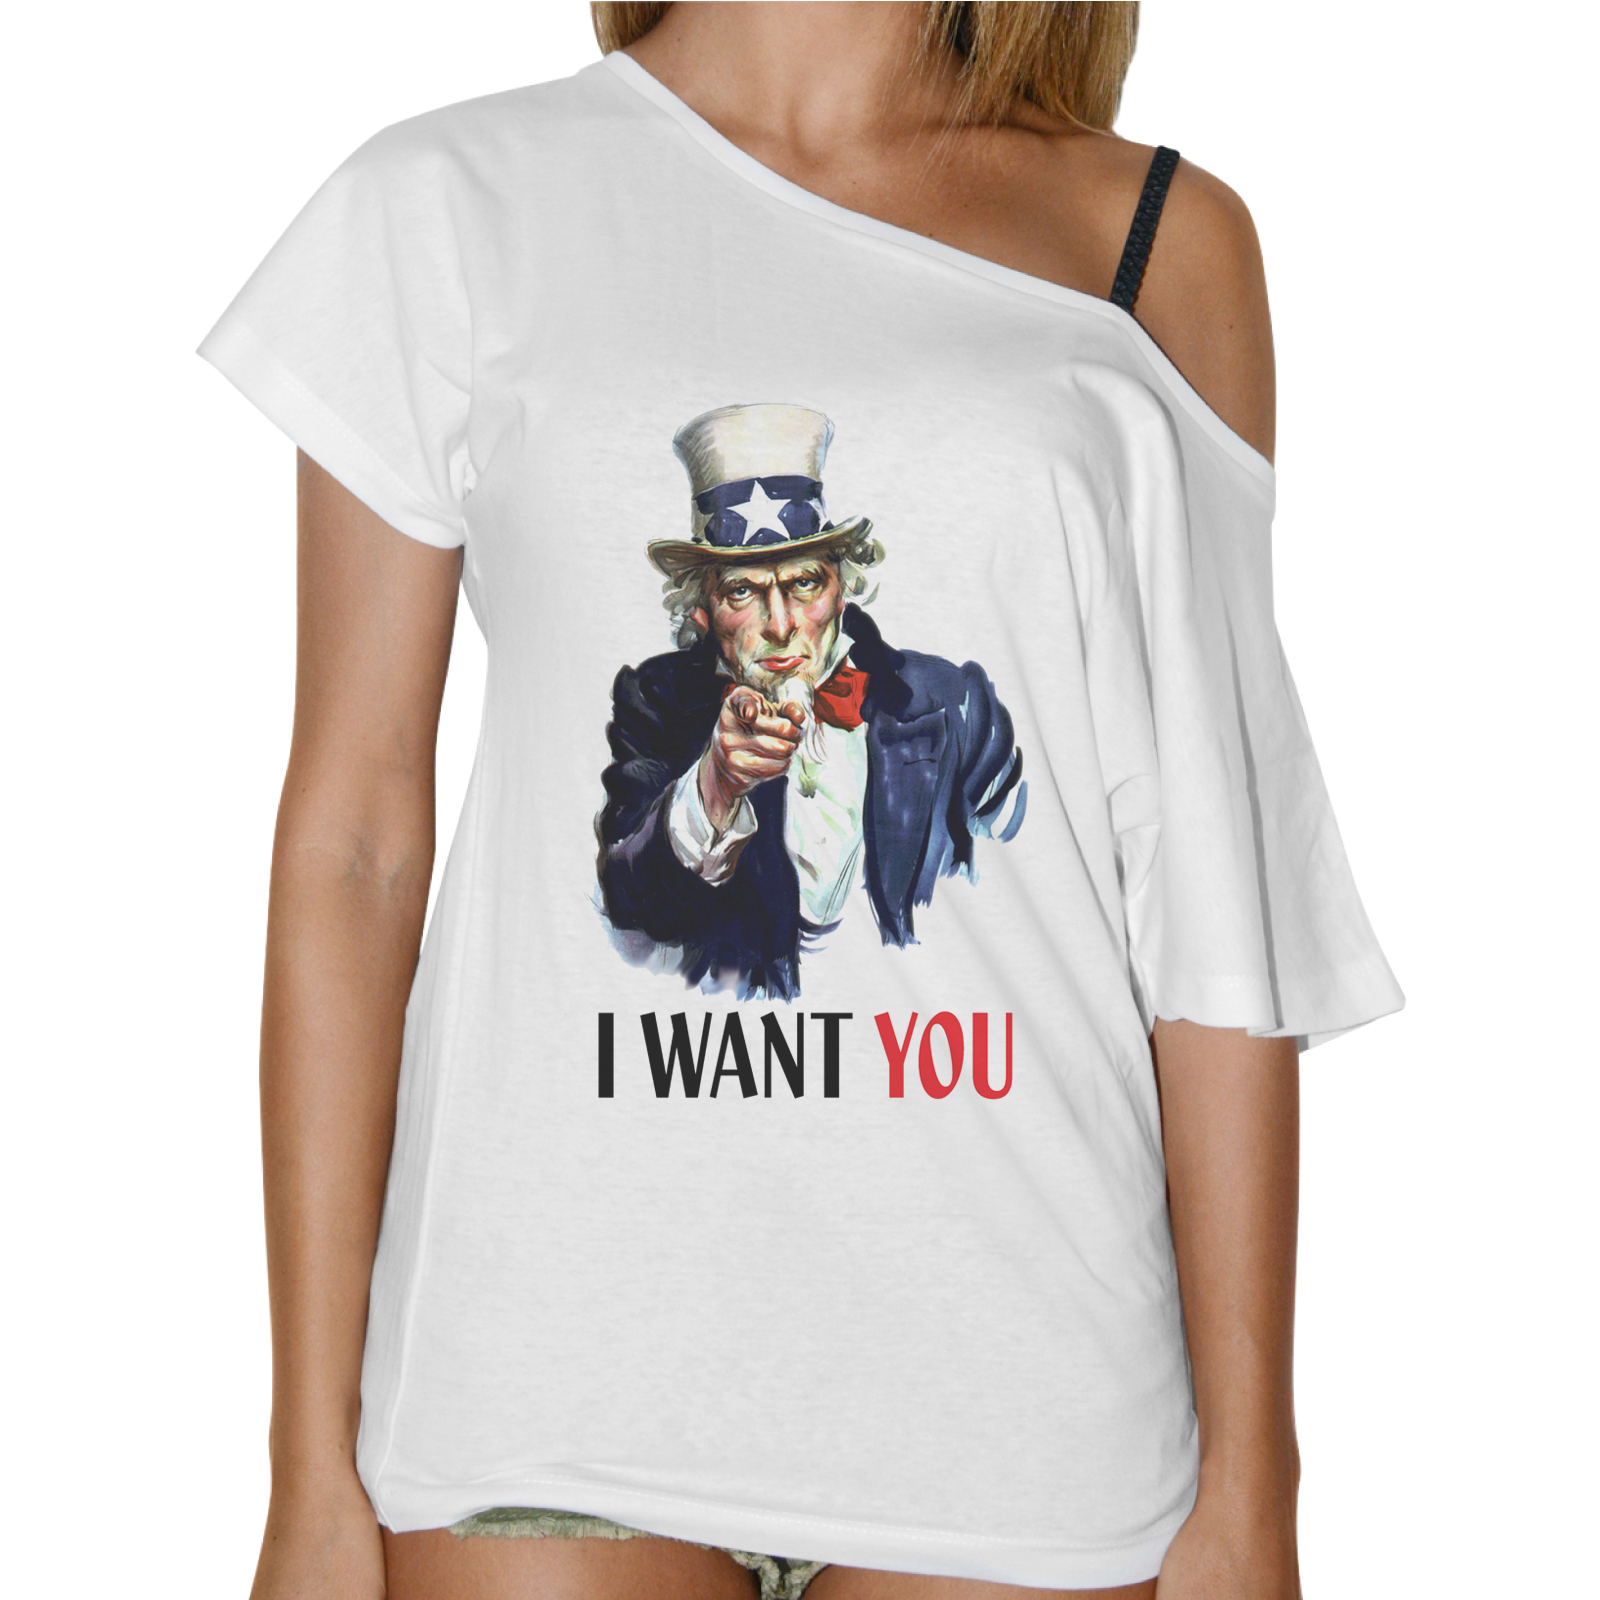 T-Shirt Donna Collo Barca I WANT YOU